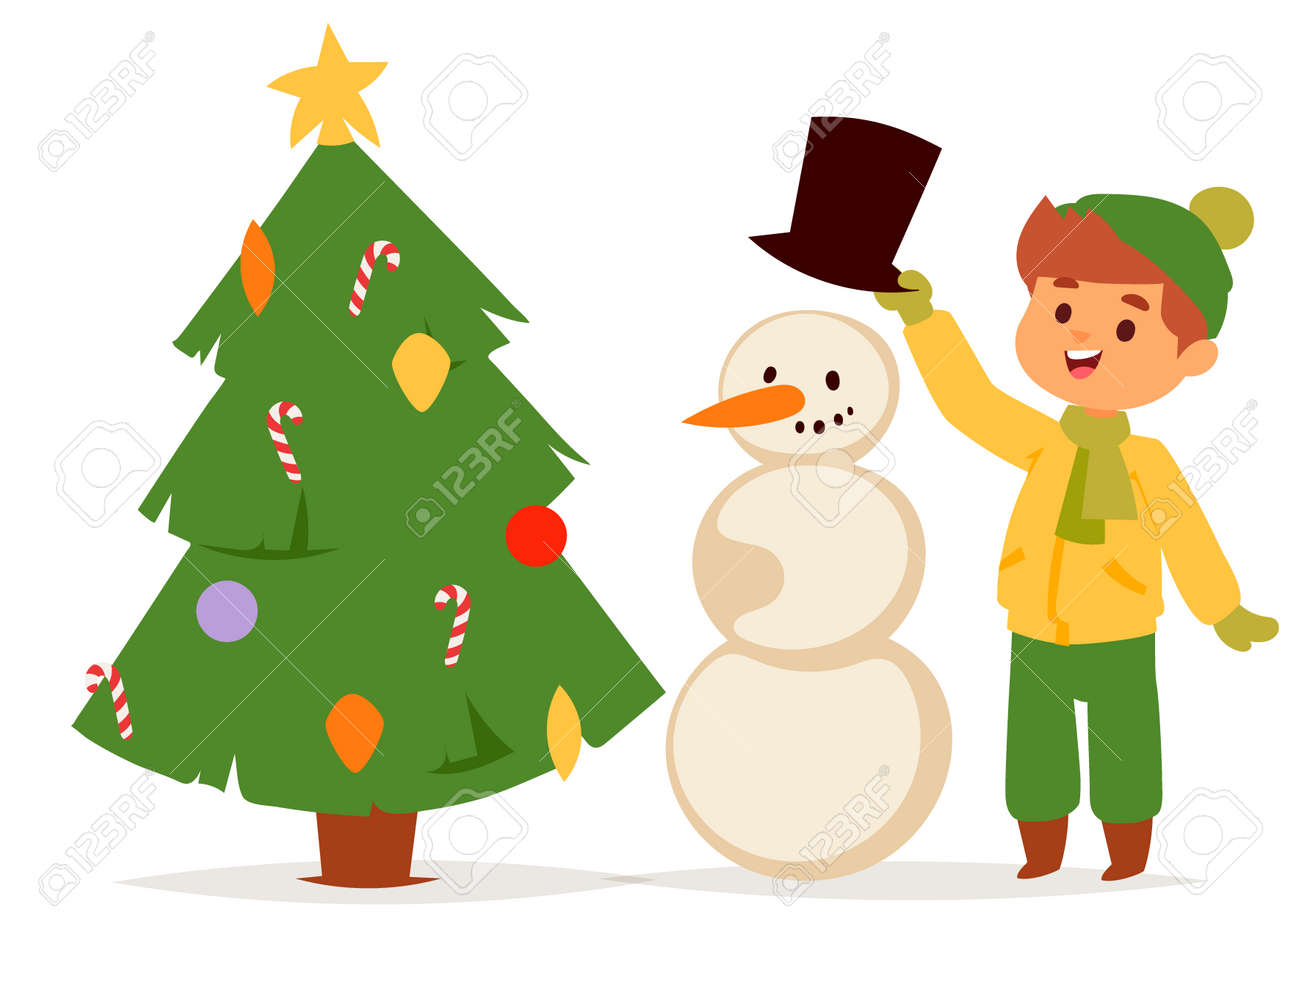 christmas kids vector character playing winter games winter children holidays christmas tree cartoon new year xmas